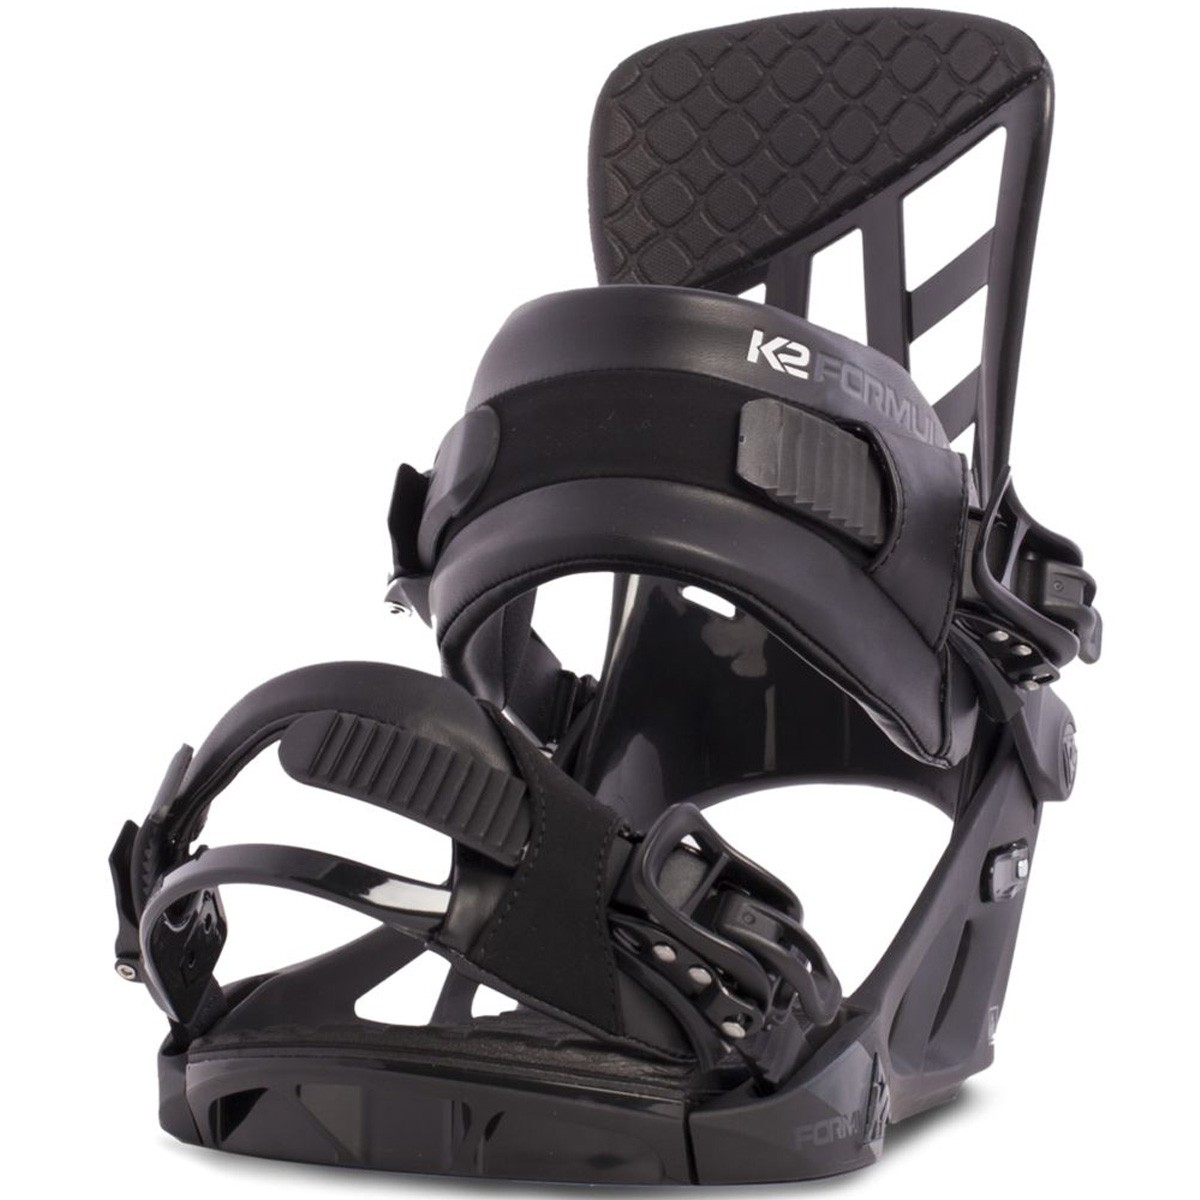 K2 Formula Snowboard Bindings 2015 - Black